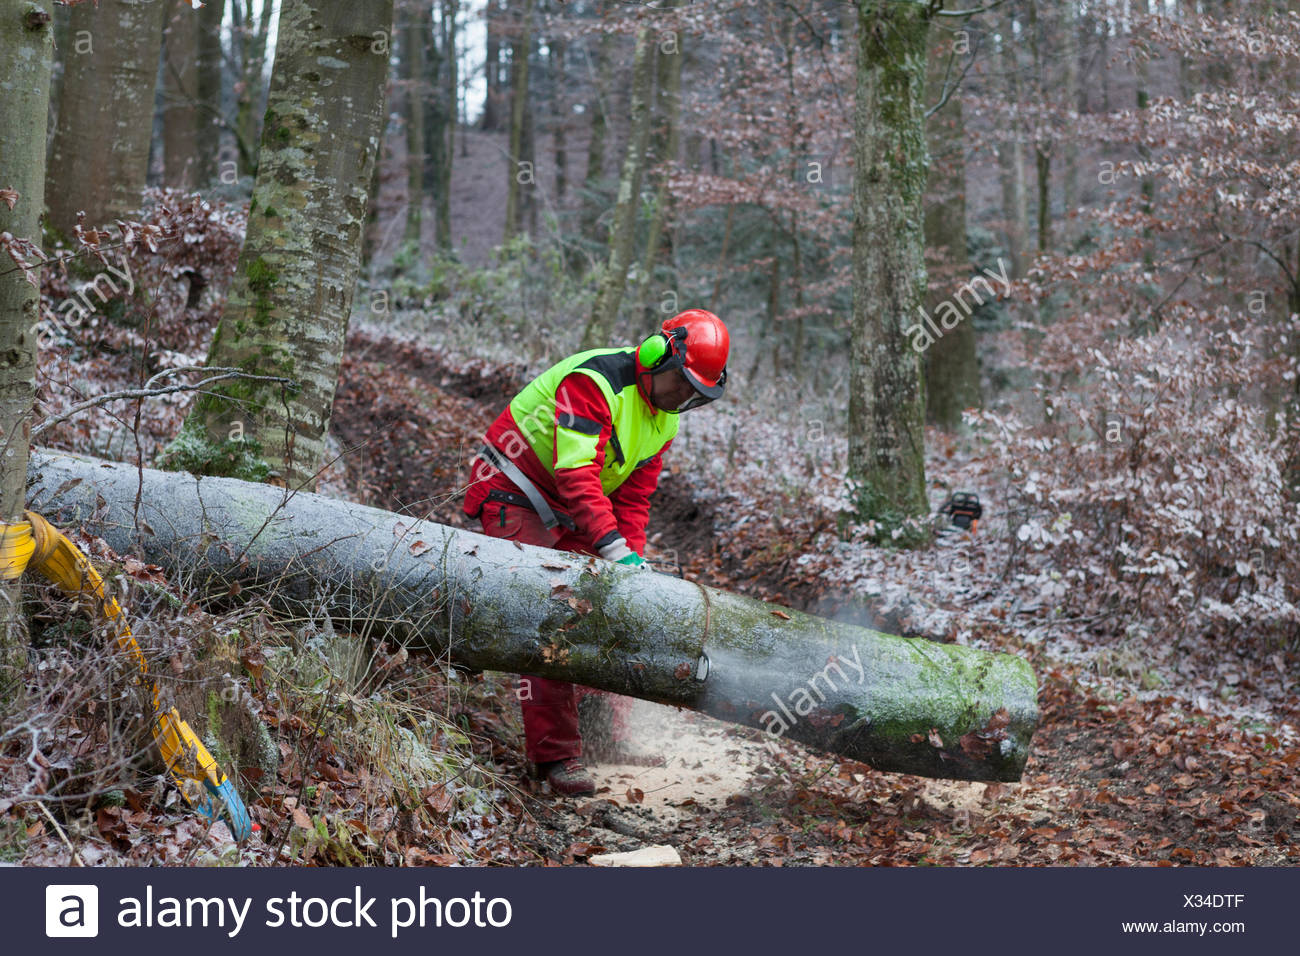 Logger sawing tree in forest - Stock Image